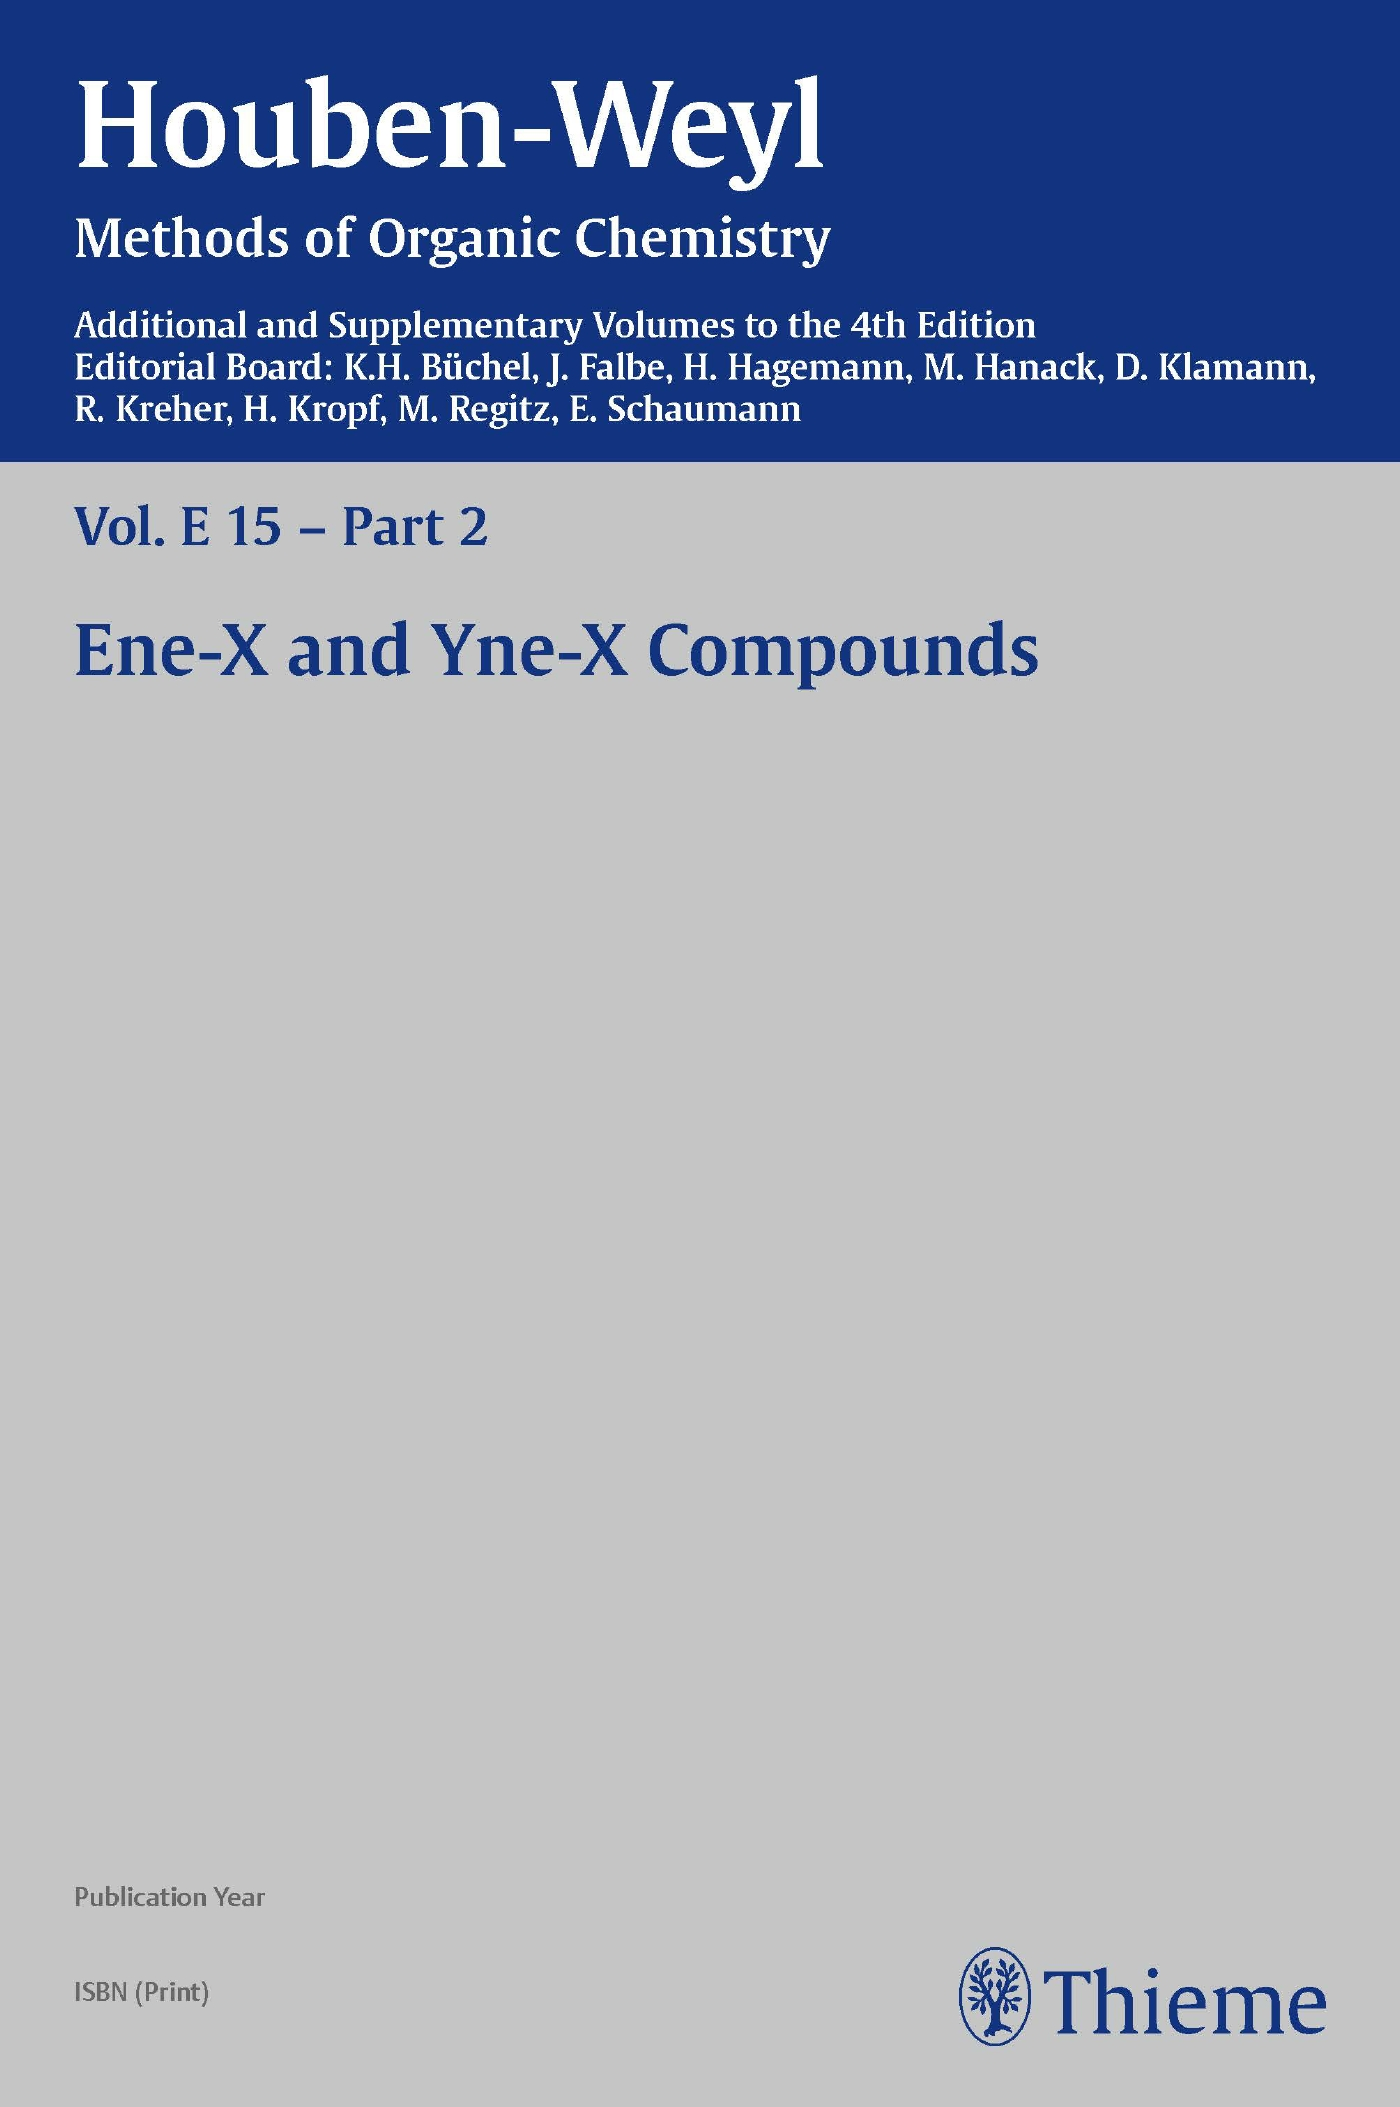 Houben-Weyl Methods of Organic Chemistry Vol. E 15/2, 4th Edition Supplement